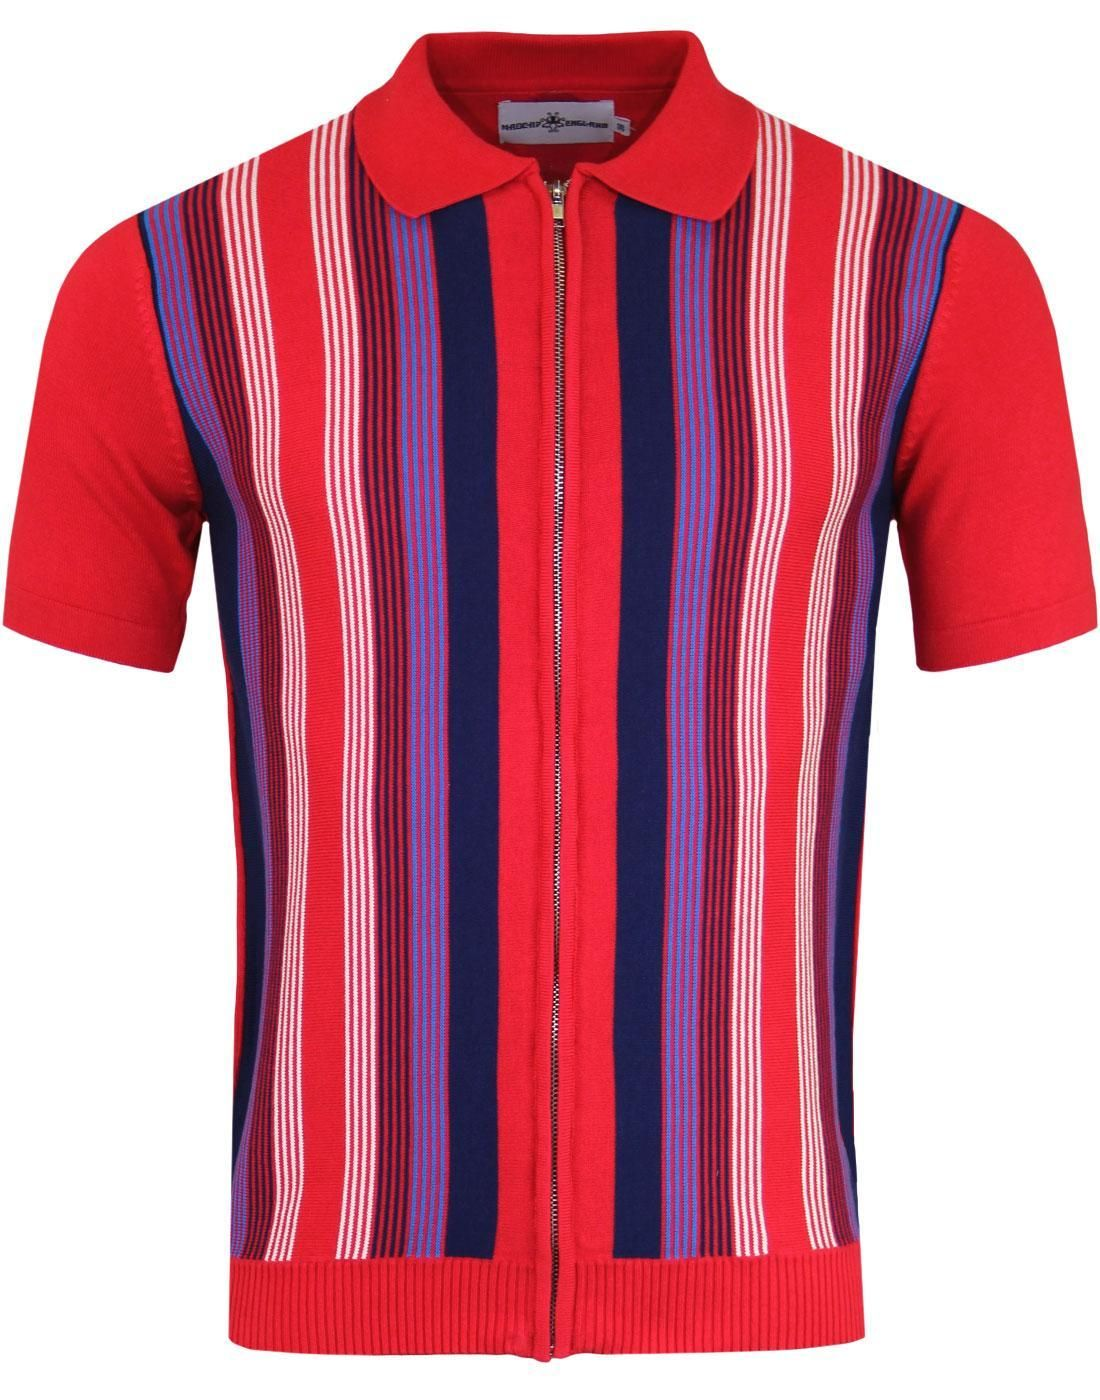 50f176f8d581c8 Men's Mod zip through short sleeve polo cardigan in Chinese Red. Red  knitted polo with white, navy and royal blue fine vertical stripes to front.